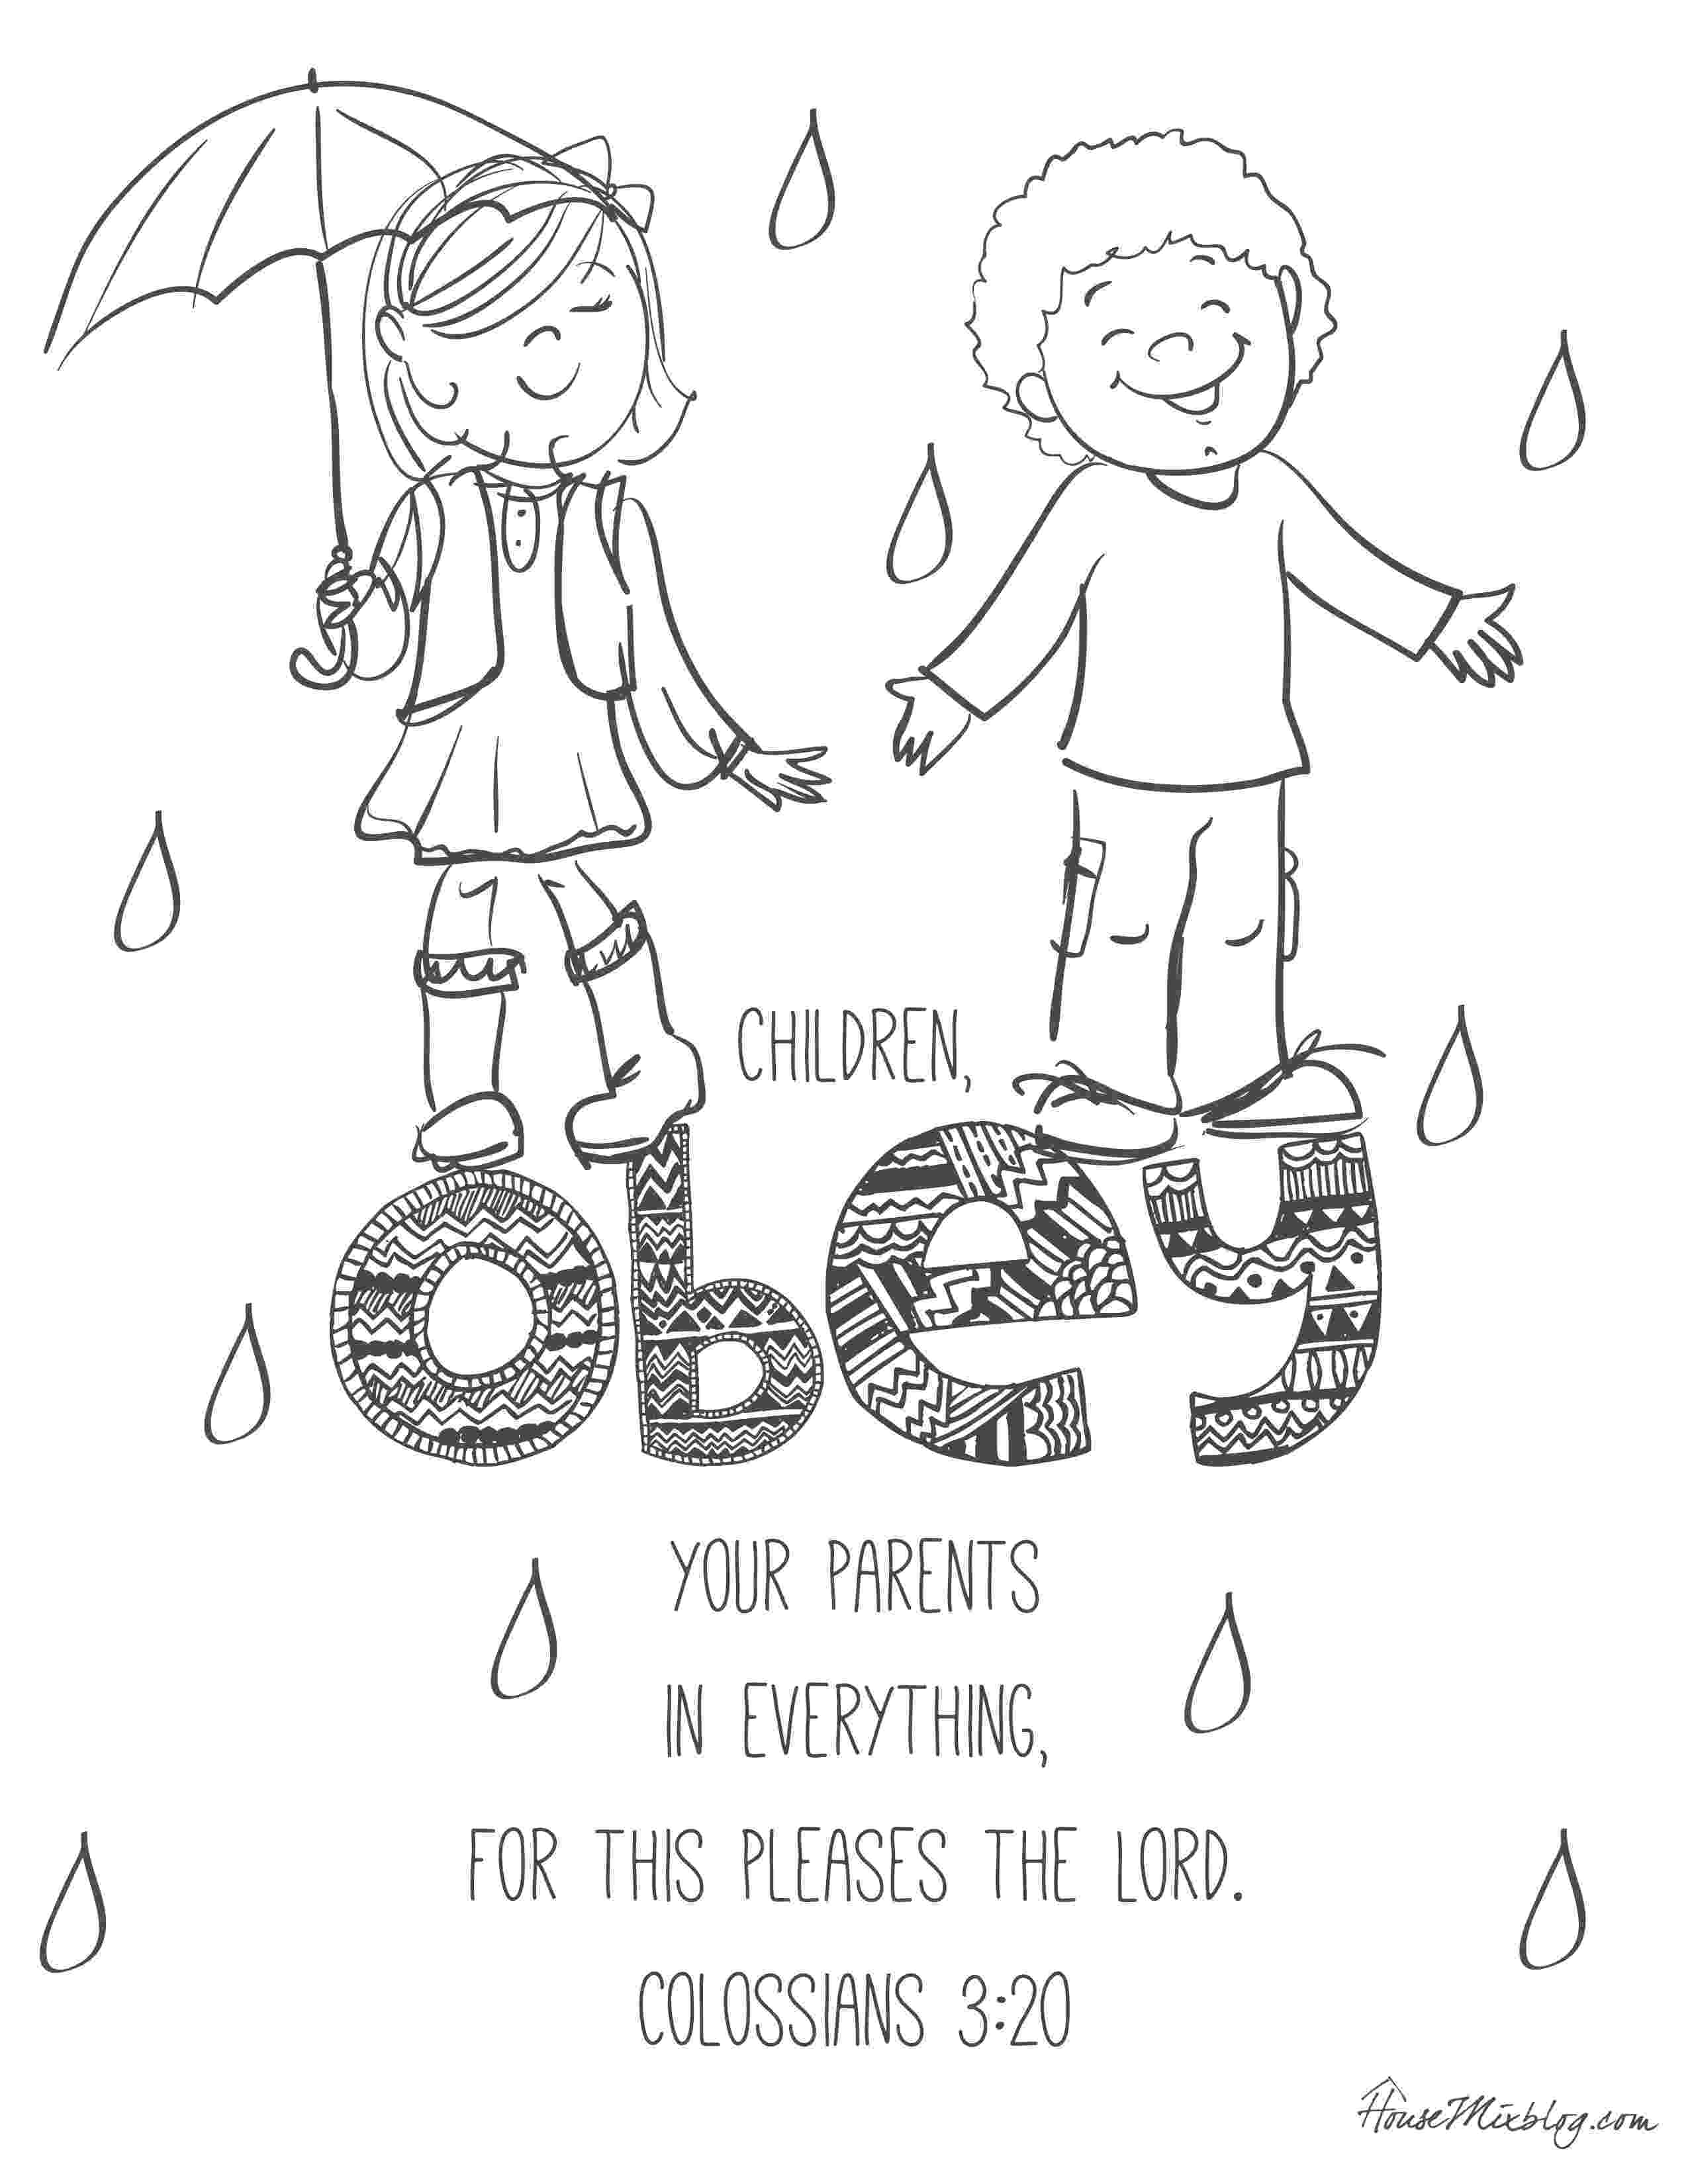 biblical coloring pages bible verse coloring pages transformcreative pages biblical coloring